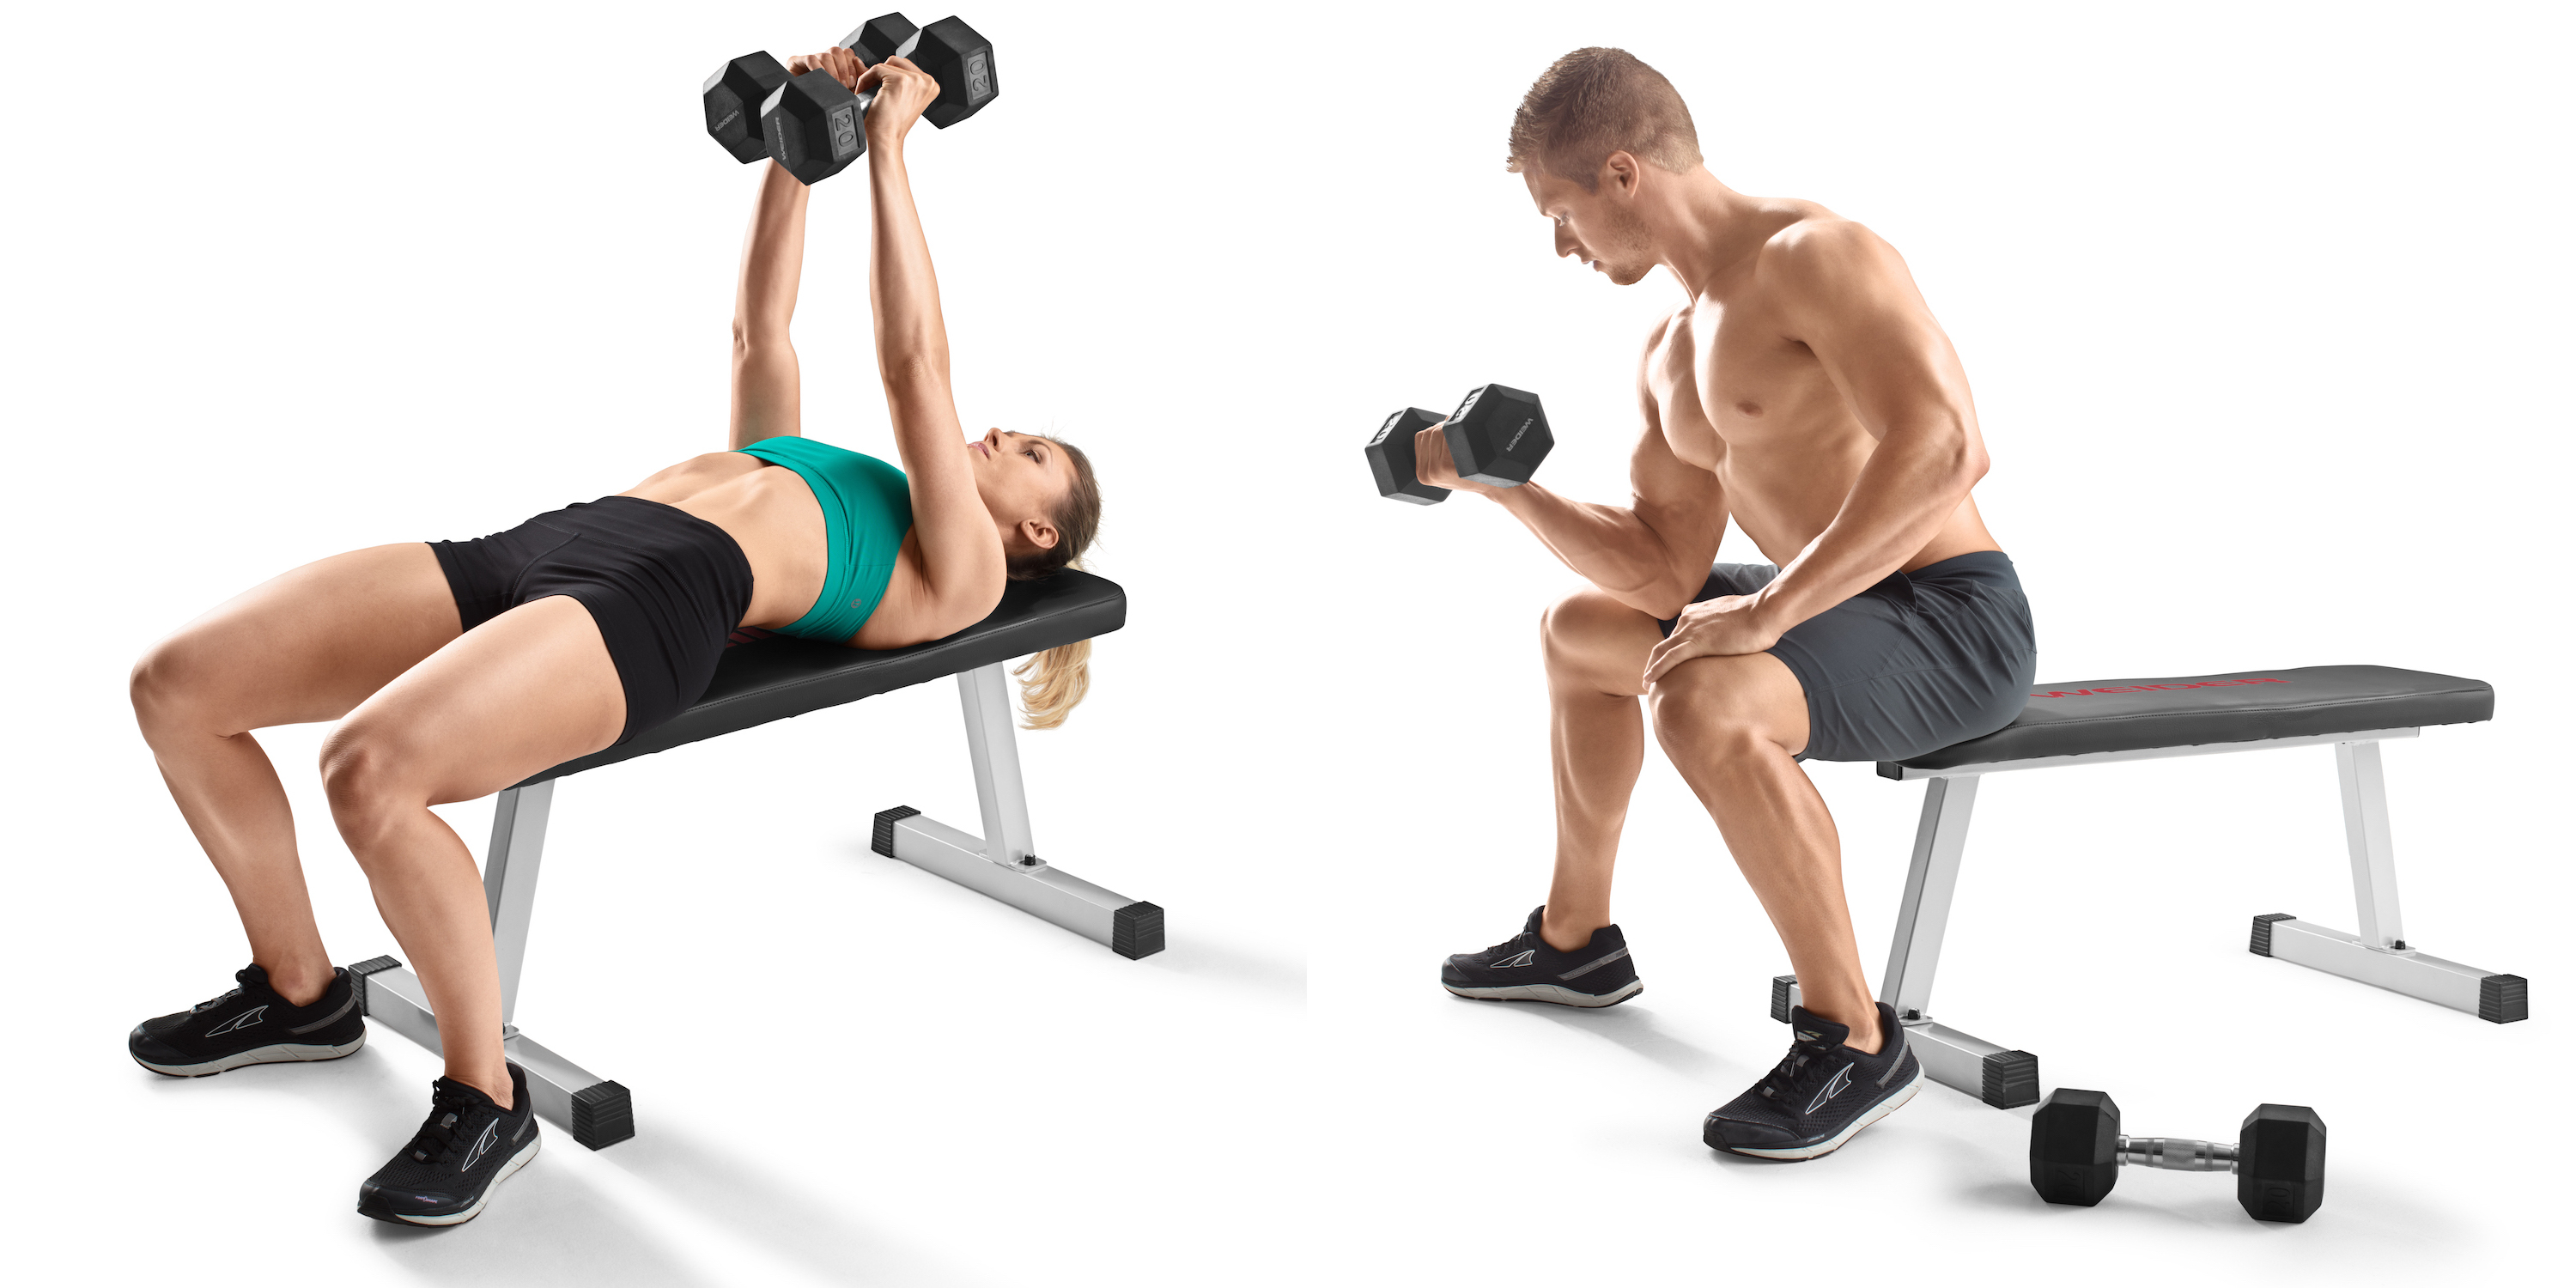 Take Your Home Workouts Up A Notch W Weider S Flat Weight Bench For 30 35 Off 9to5toys